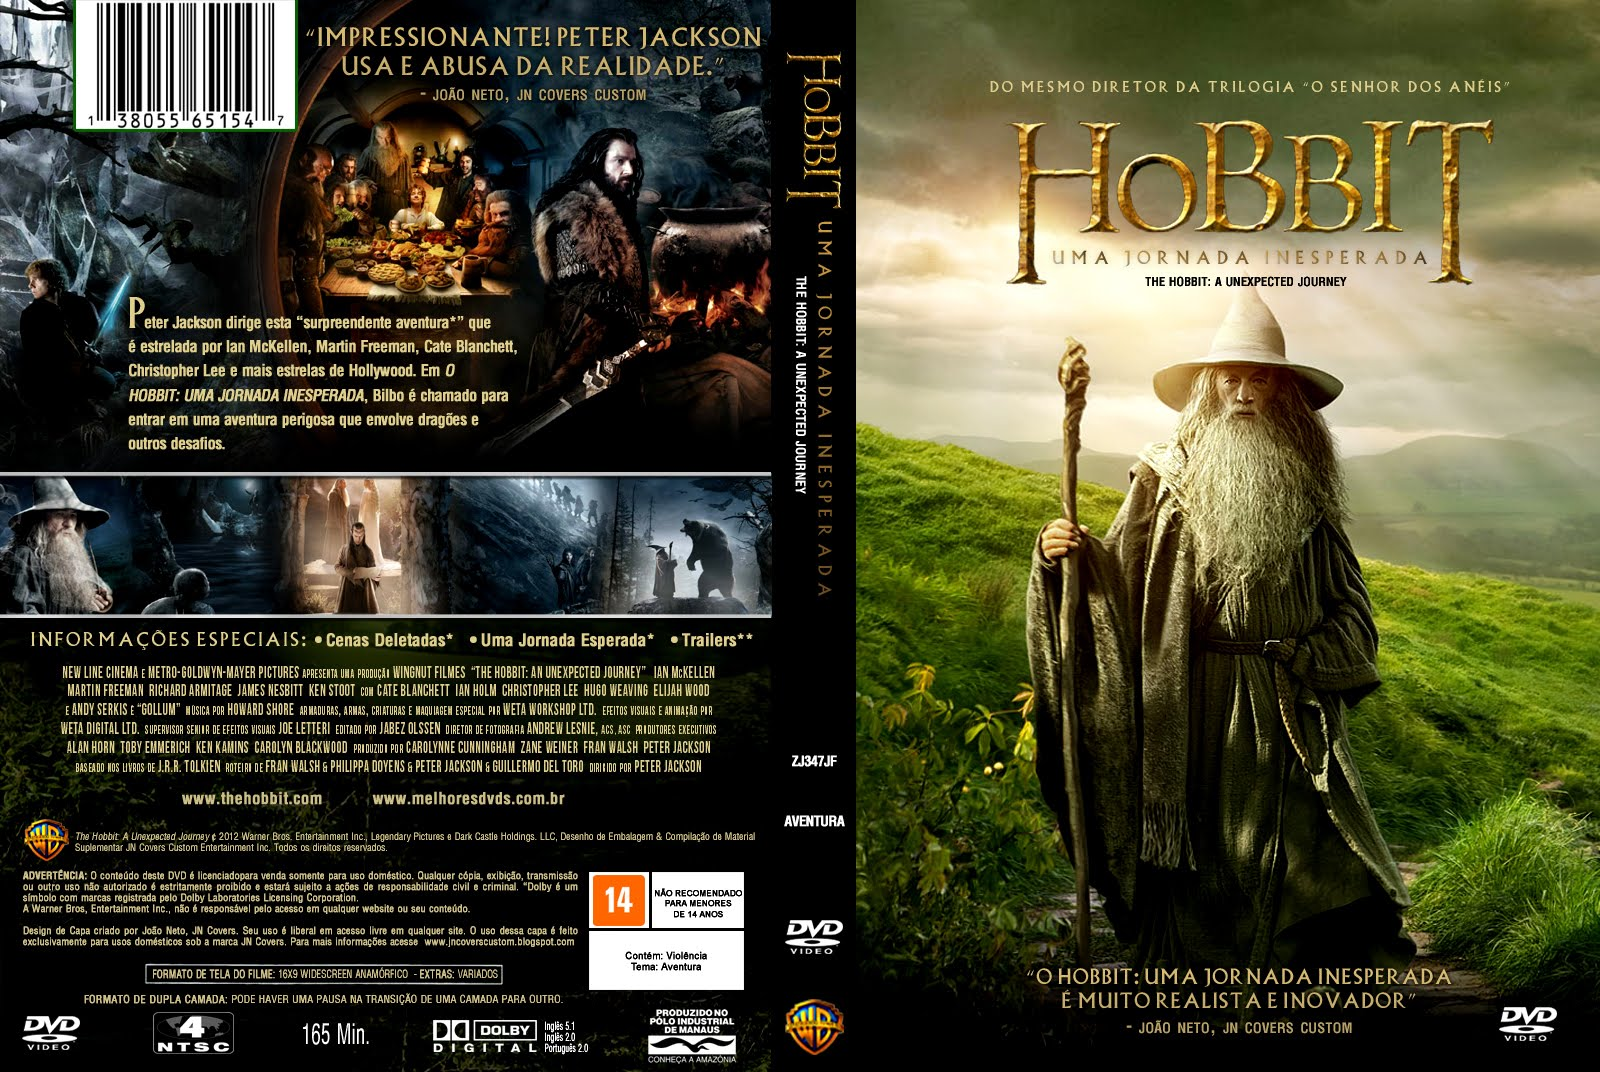 O Hobbit: Uma Jornada Inesperada (The Hobbit) Torrent - Dual Áudio 3D